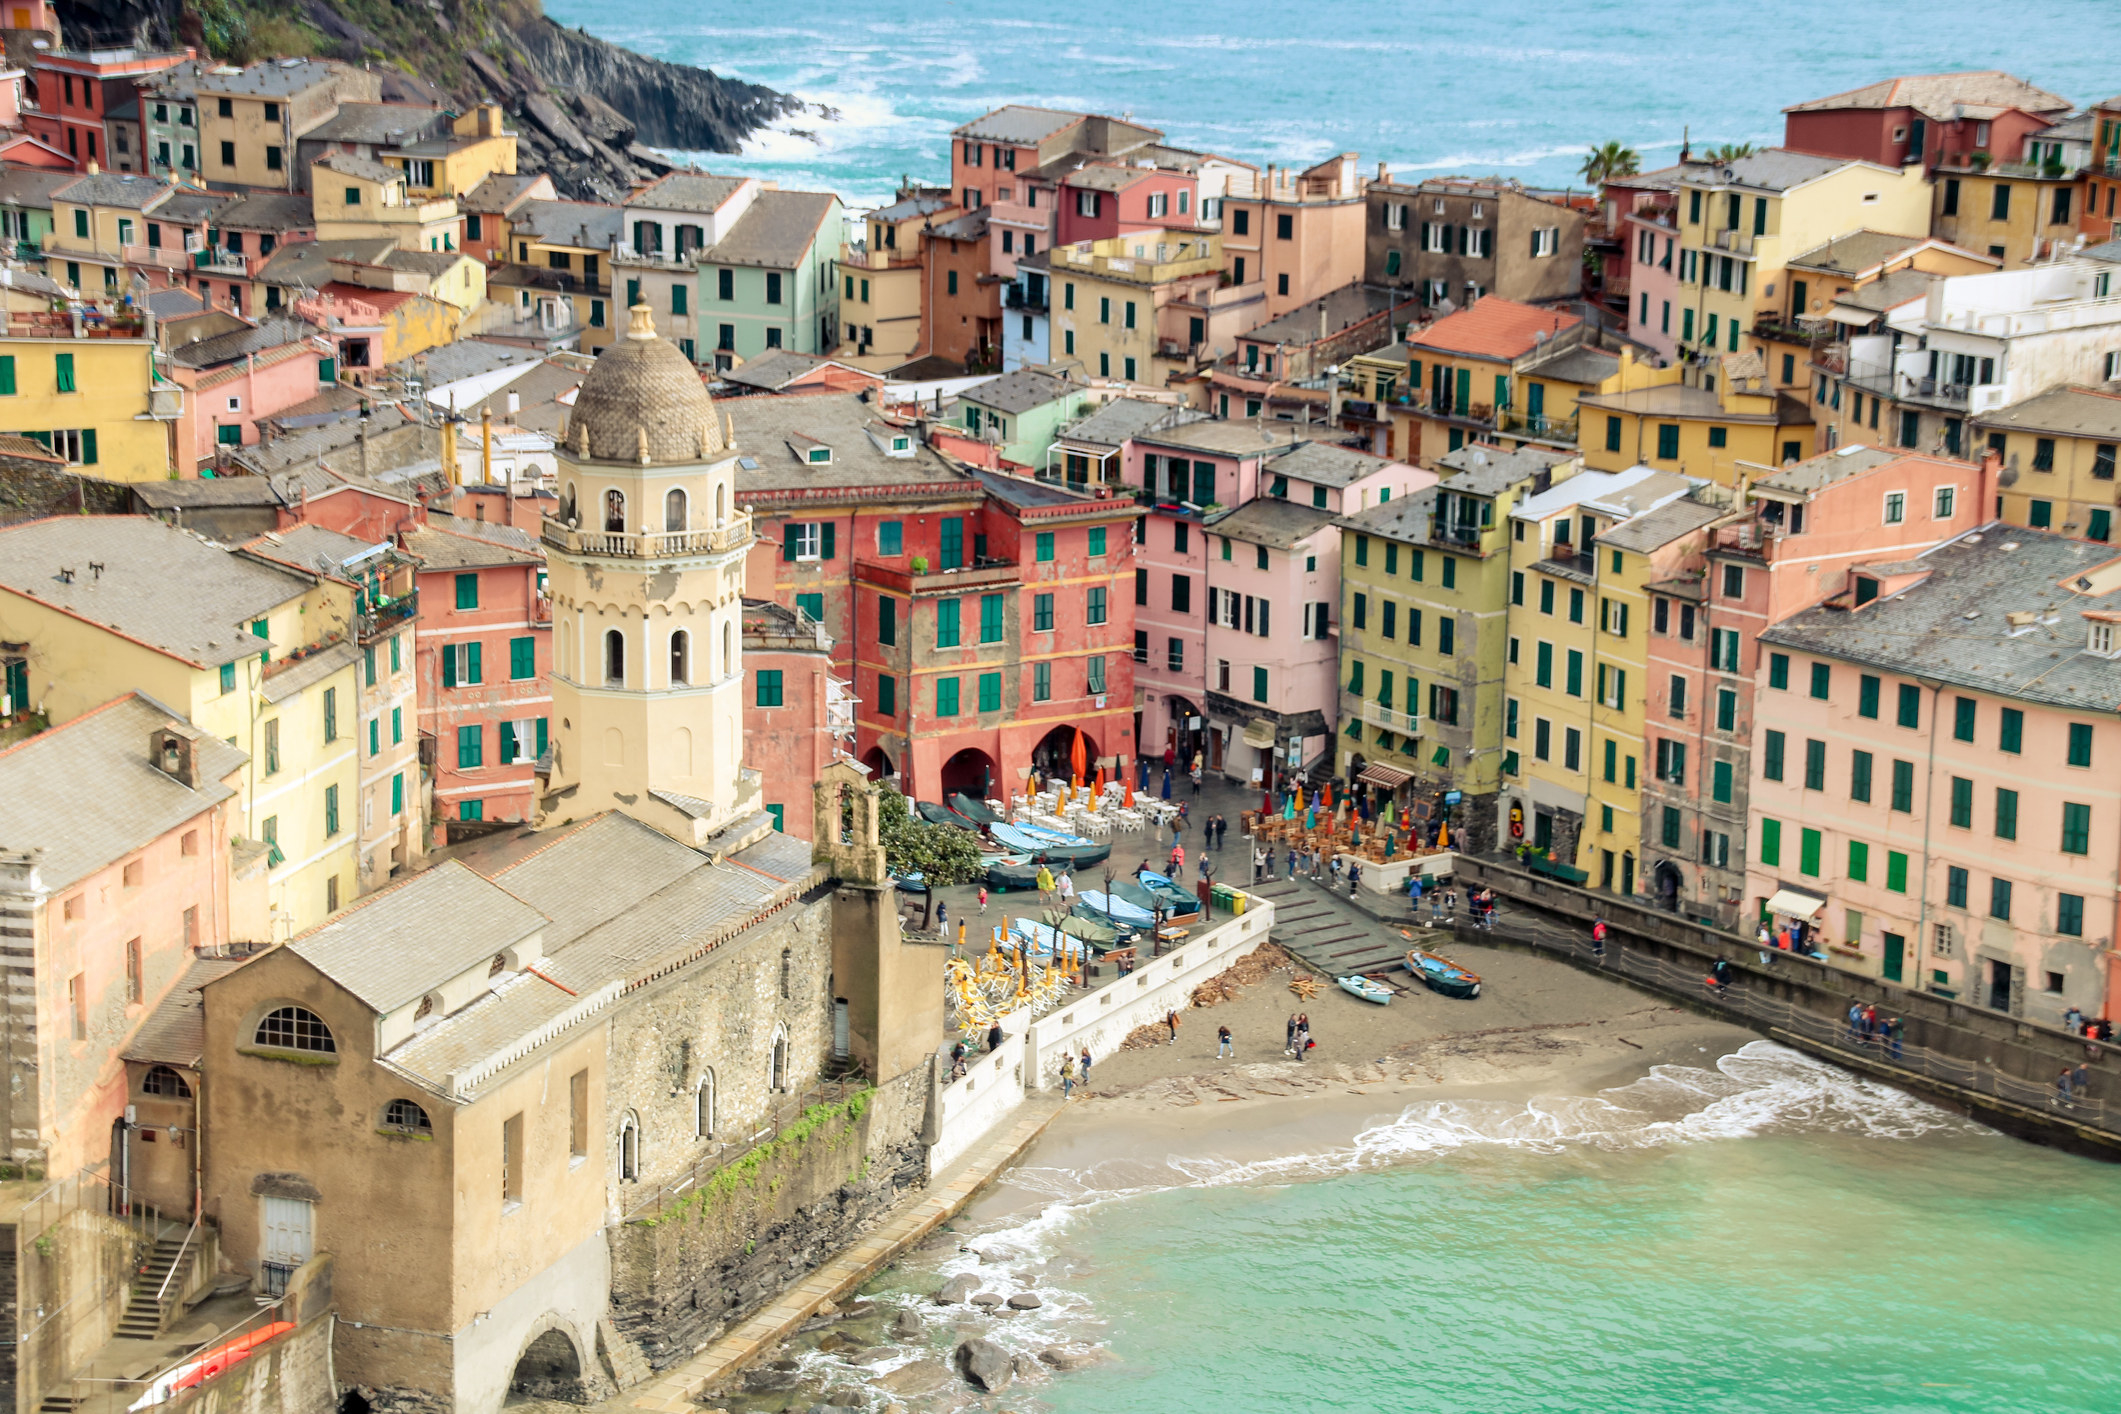 The town ofVernazza in Cinque Terre.